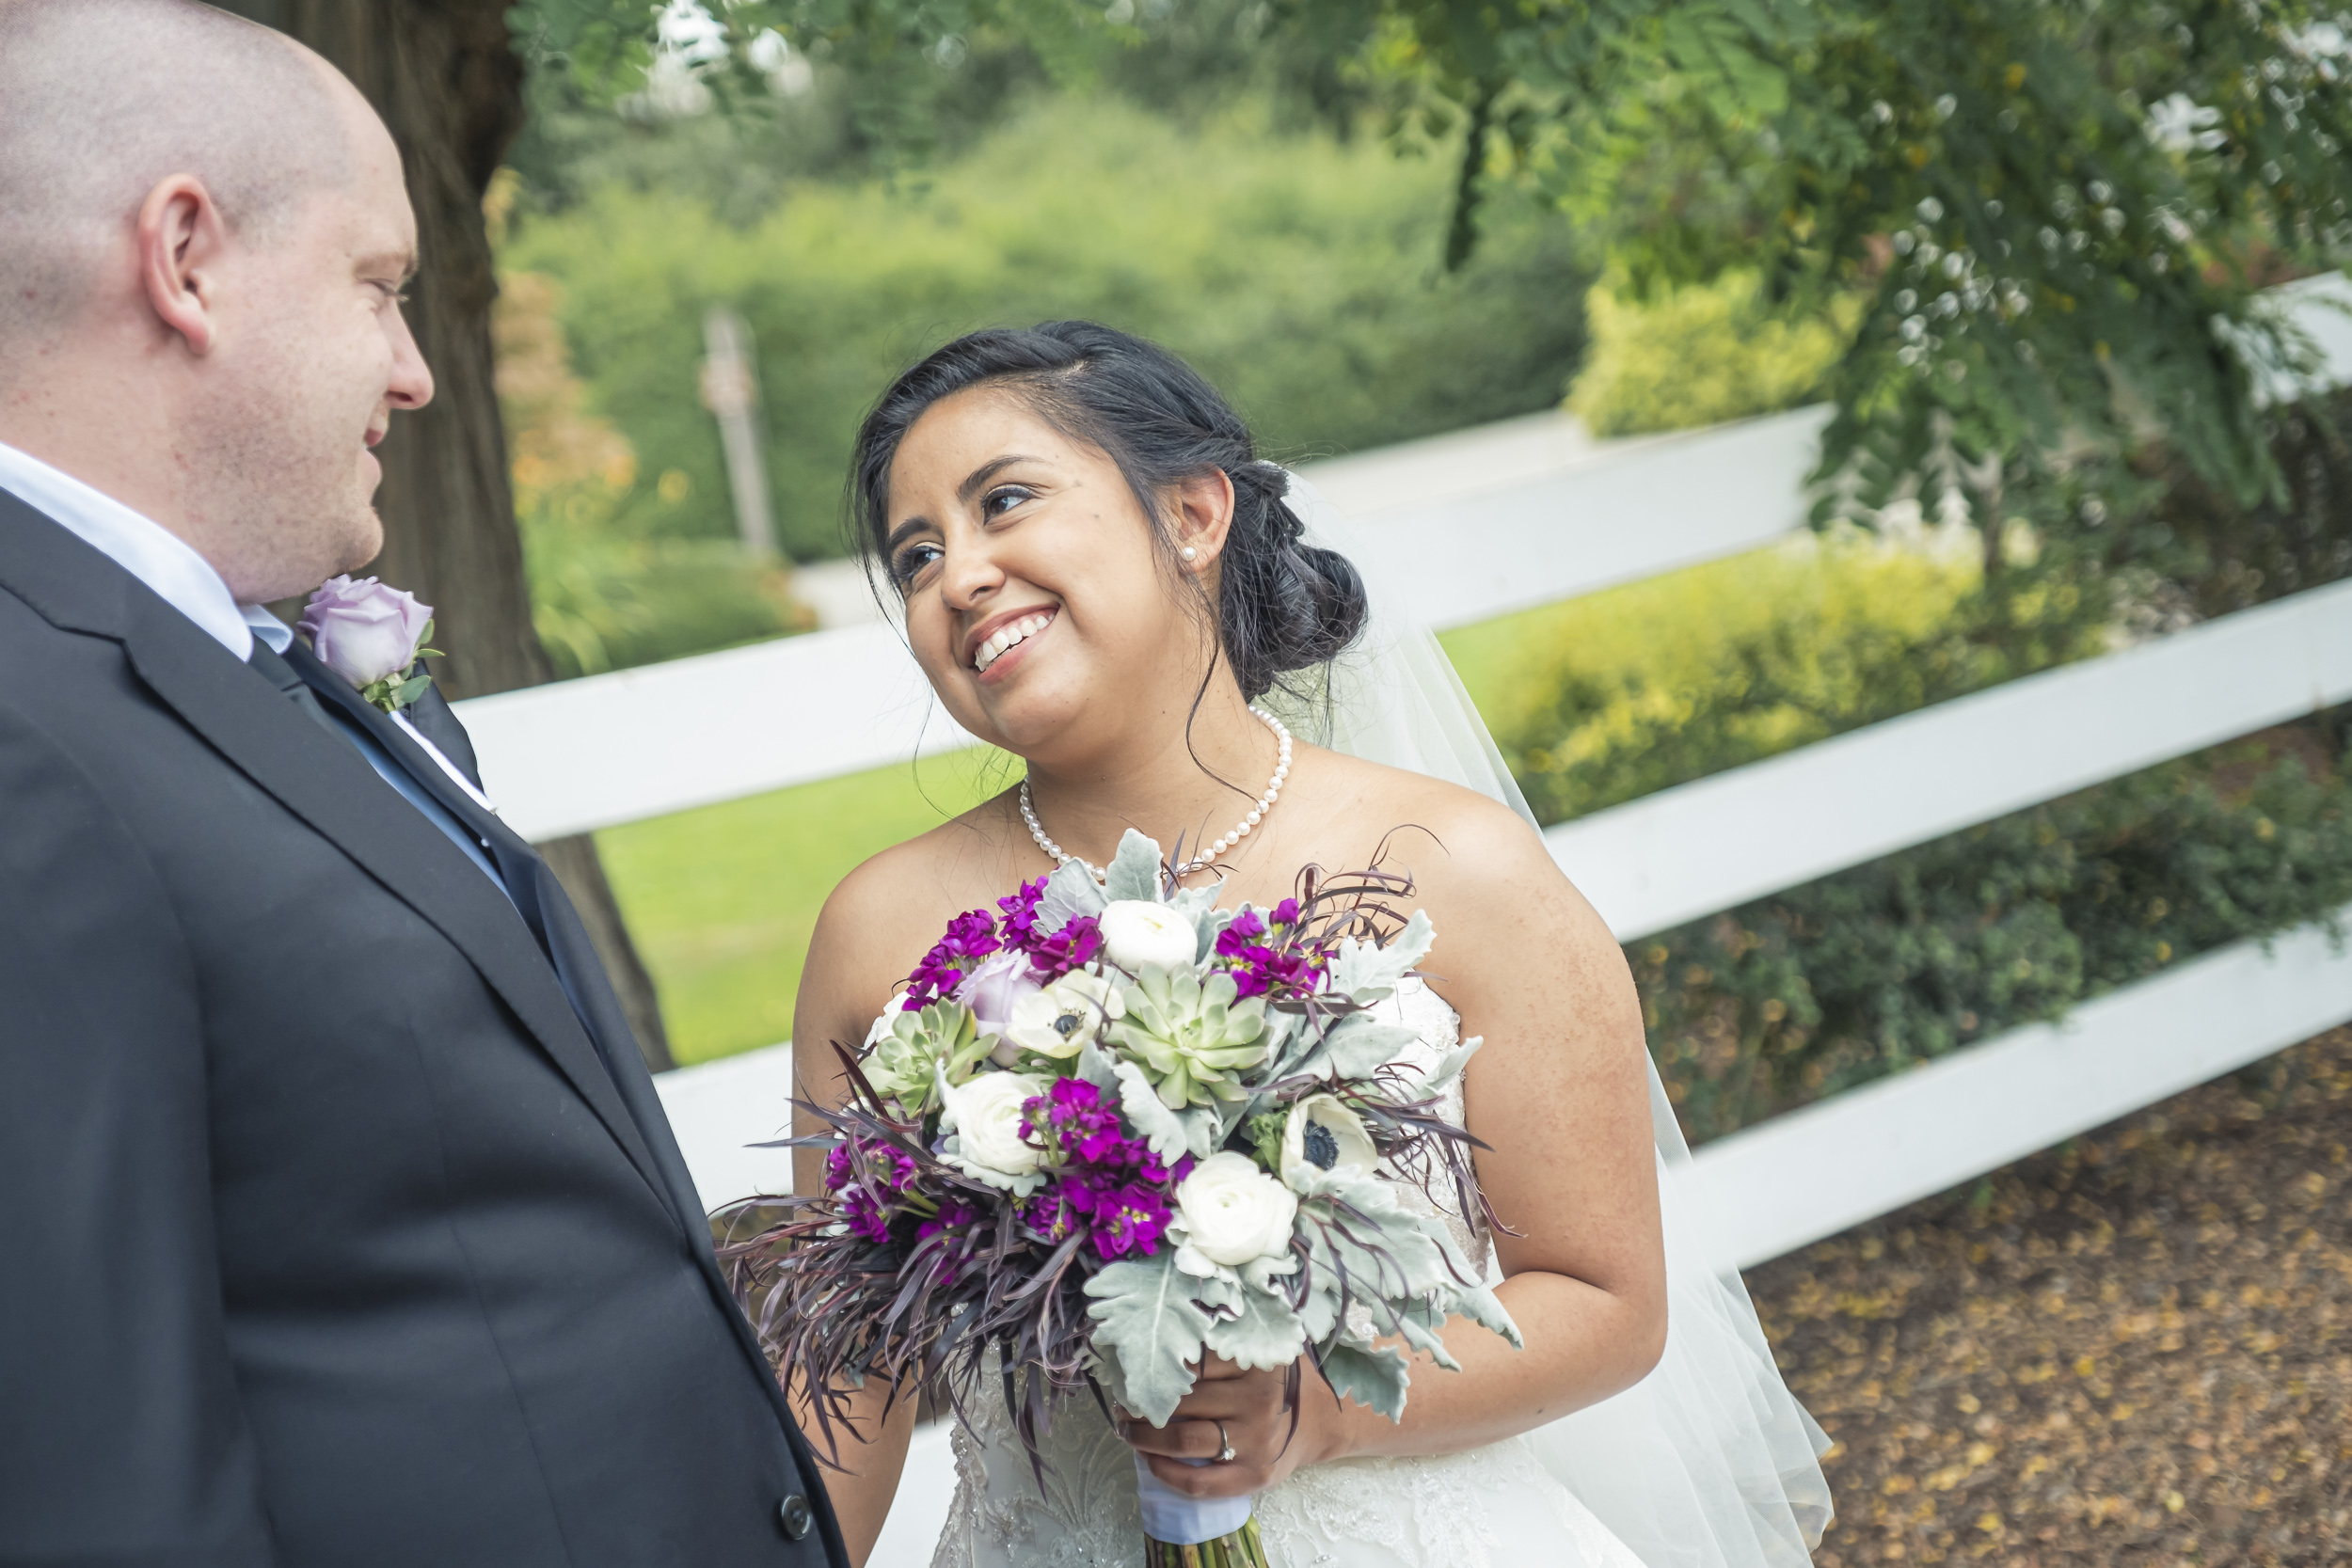 Natalie and Brian Wedding by Michael Sladek Photography-5.jpg